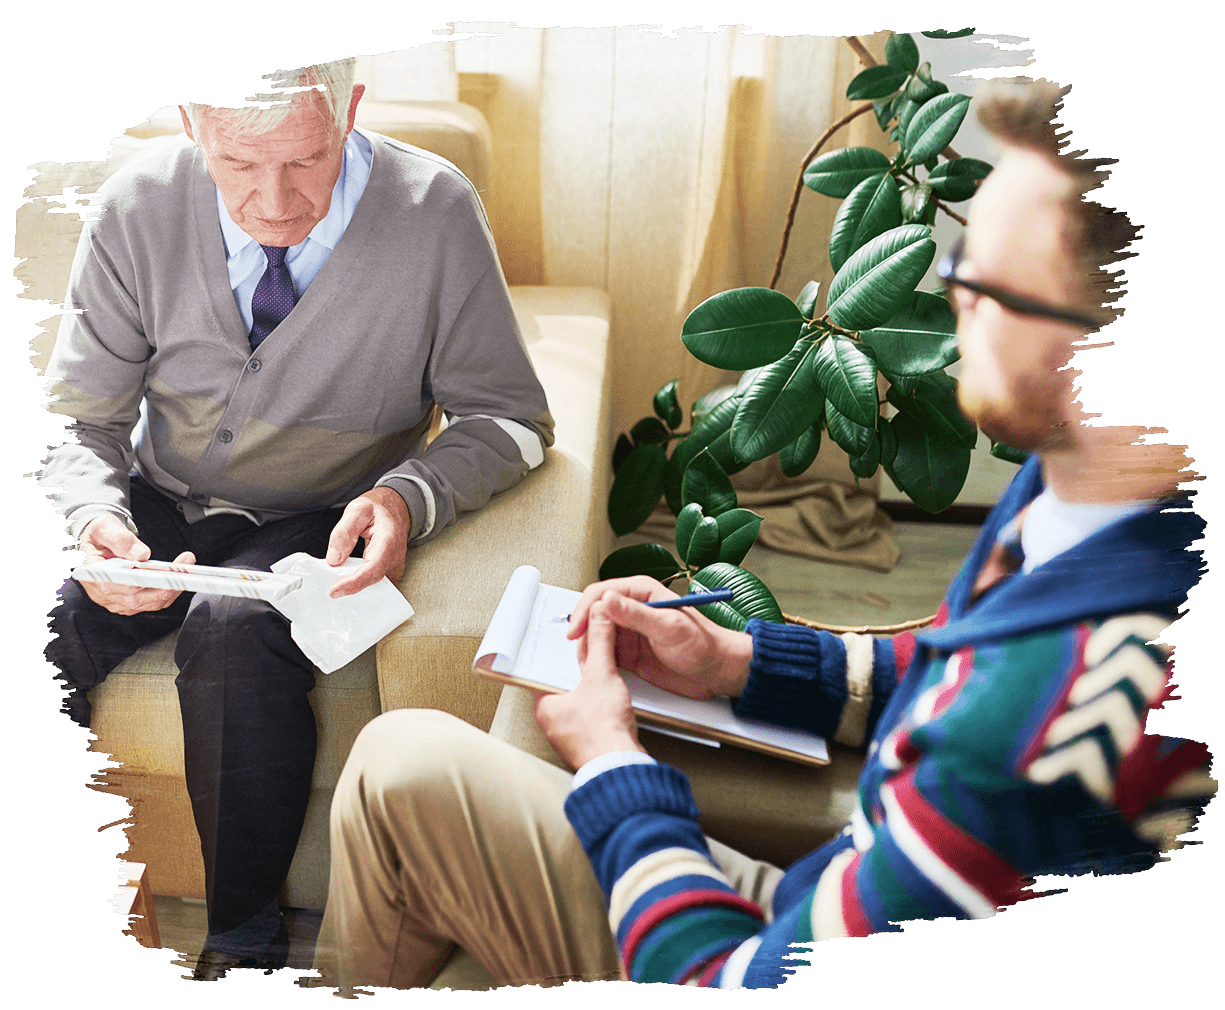 This is an image of a two people in a therapy session. One is of an old man being counselled by a Rapid Action Health therapist